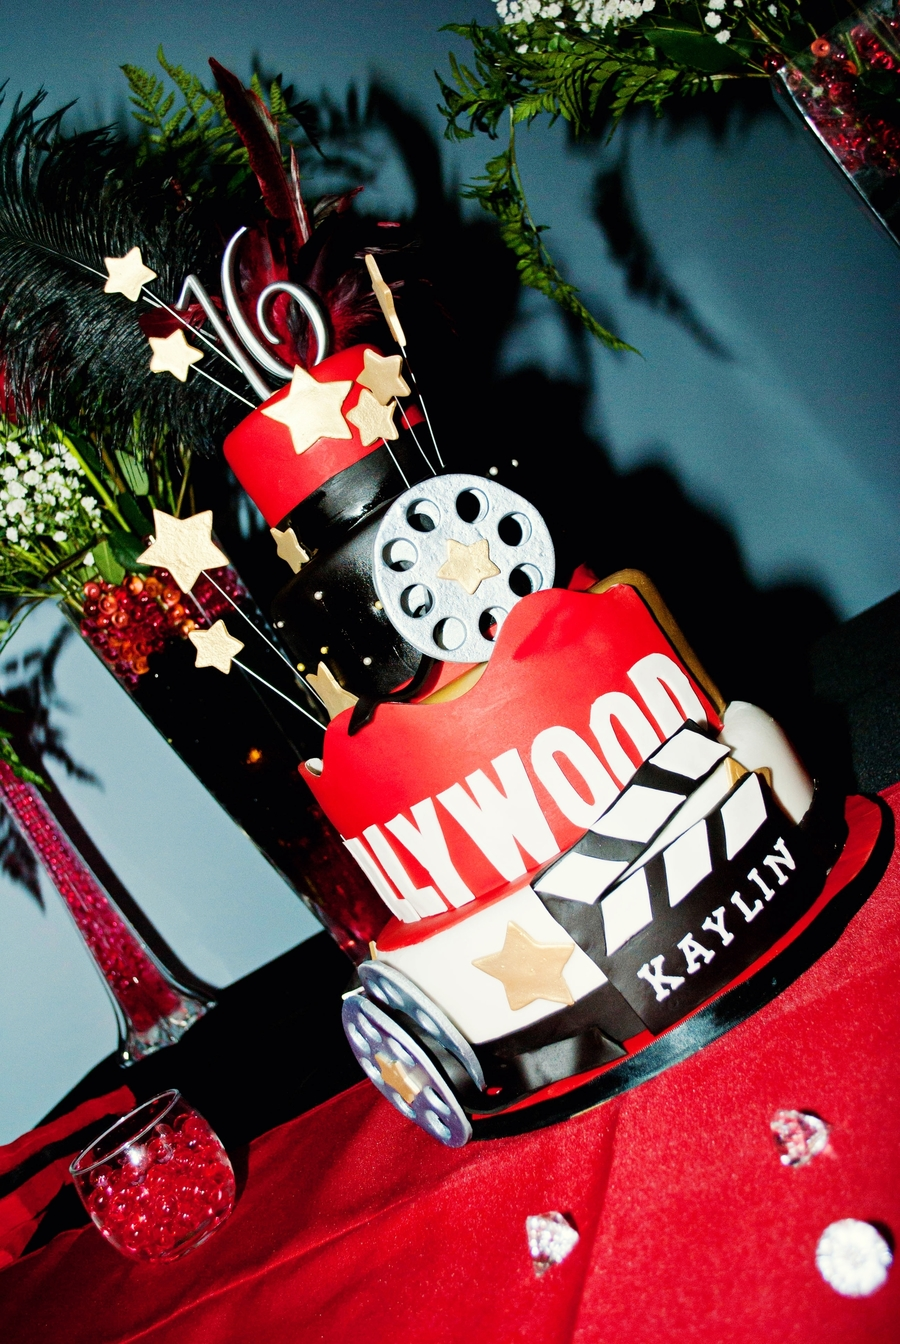 Hollywood Theme Cake Decorations